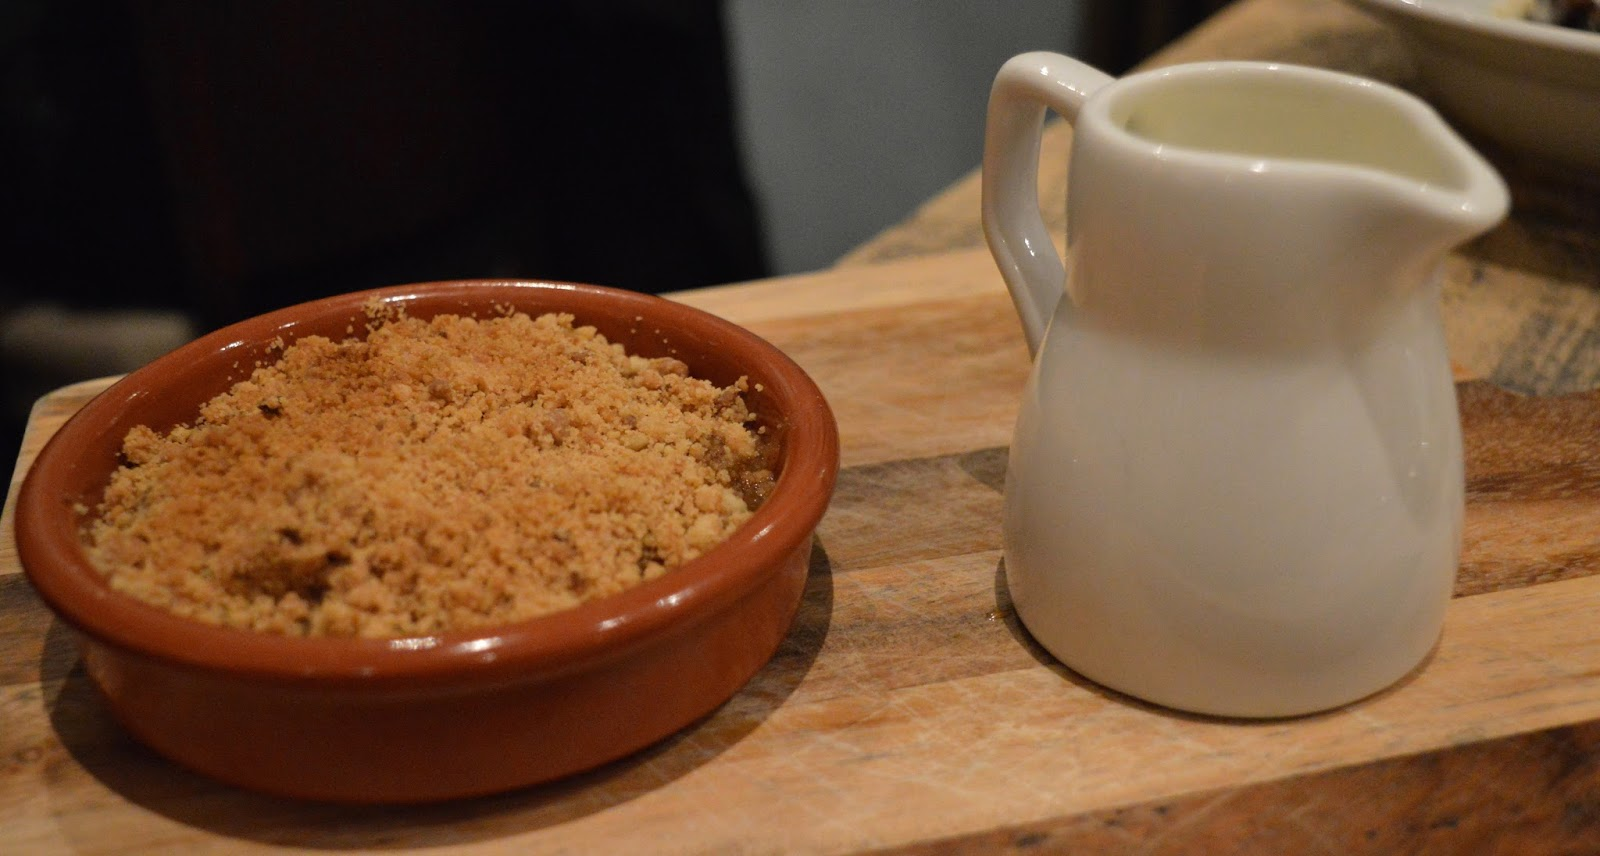 Homemade Apple Crumble and Custard from Hinnies Restaurant, Whitley Bay